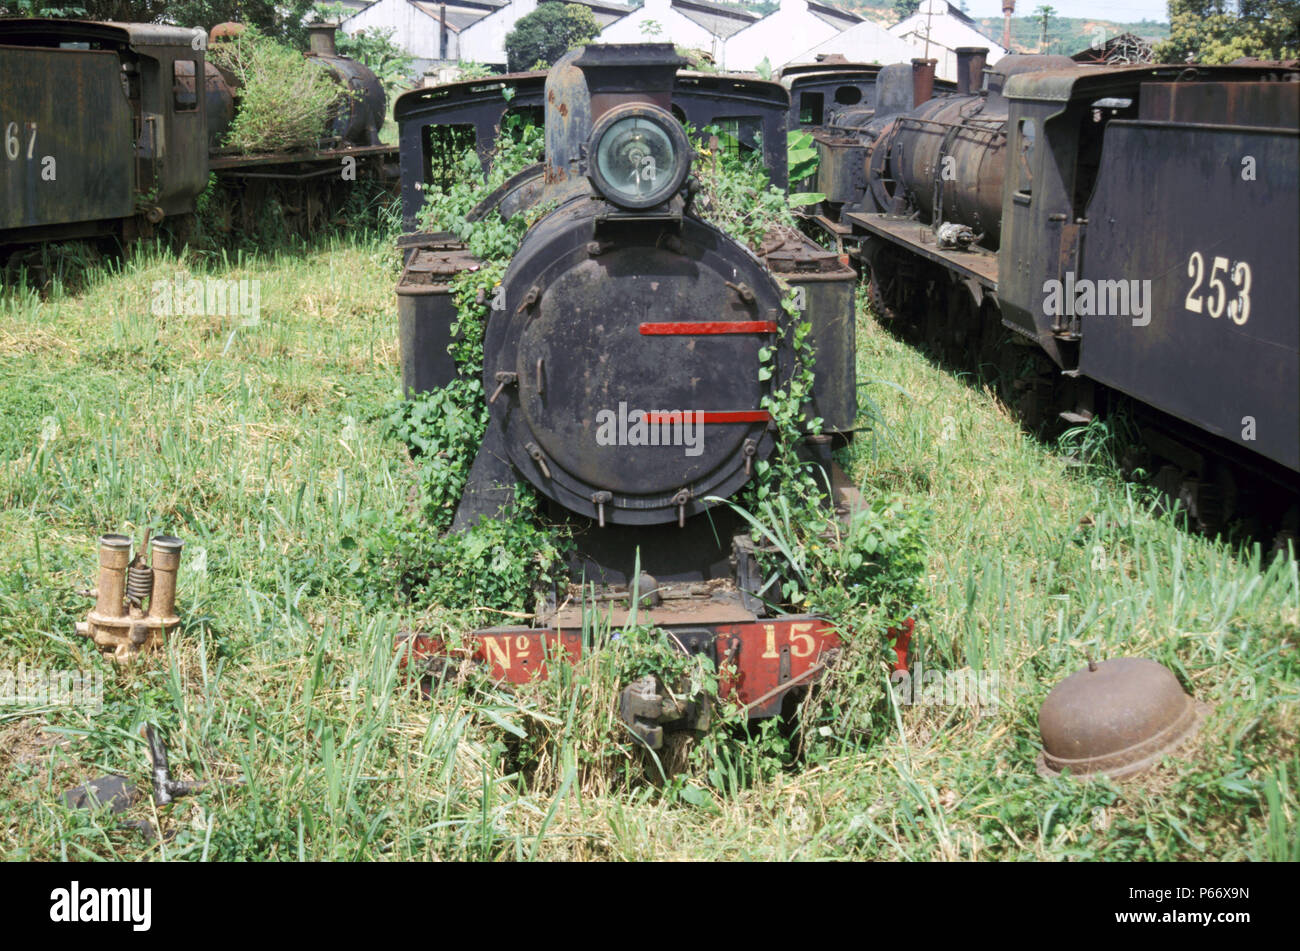 Abandoned British built locomotives at Location Works Ghana in 1985, The main works buildings can be seen in the far background. - Stock Image